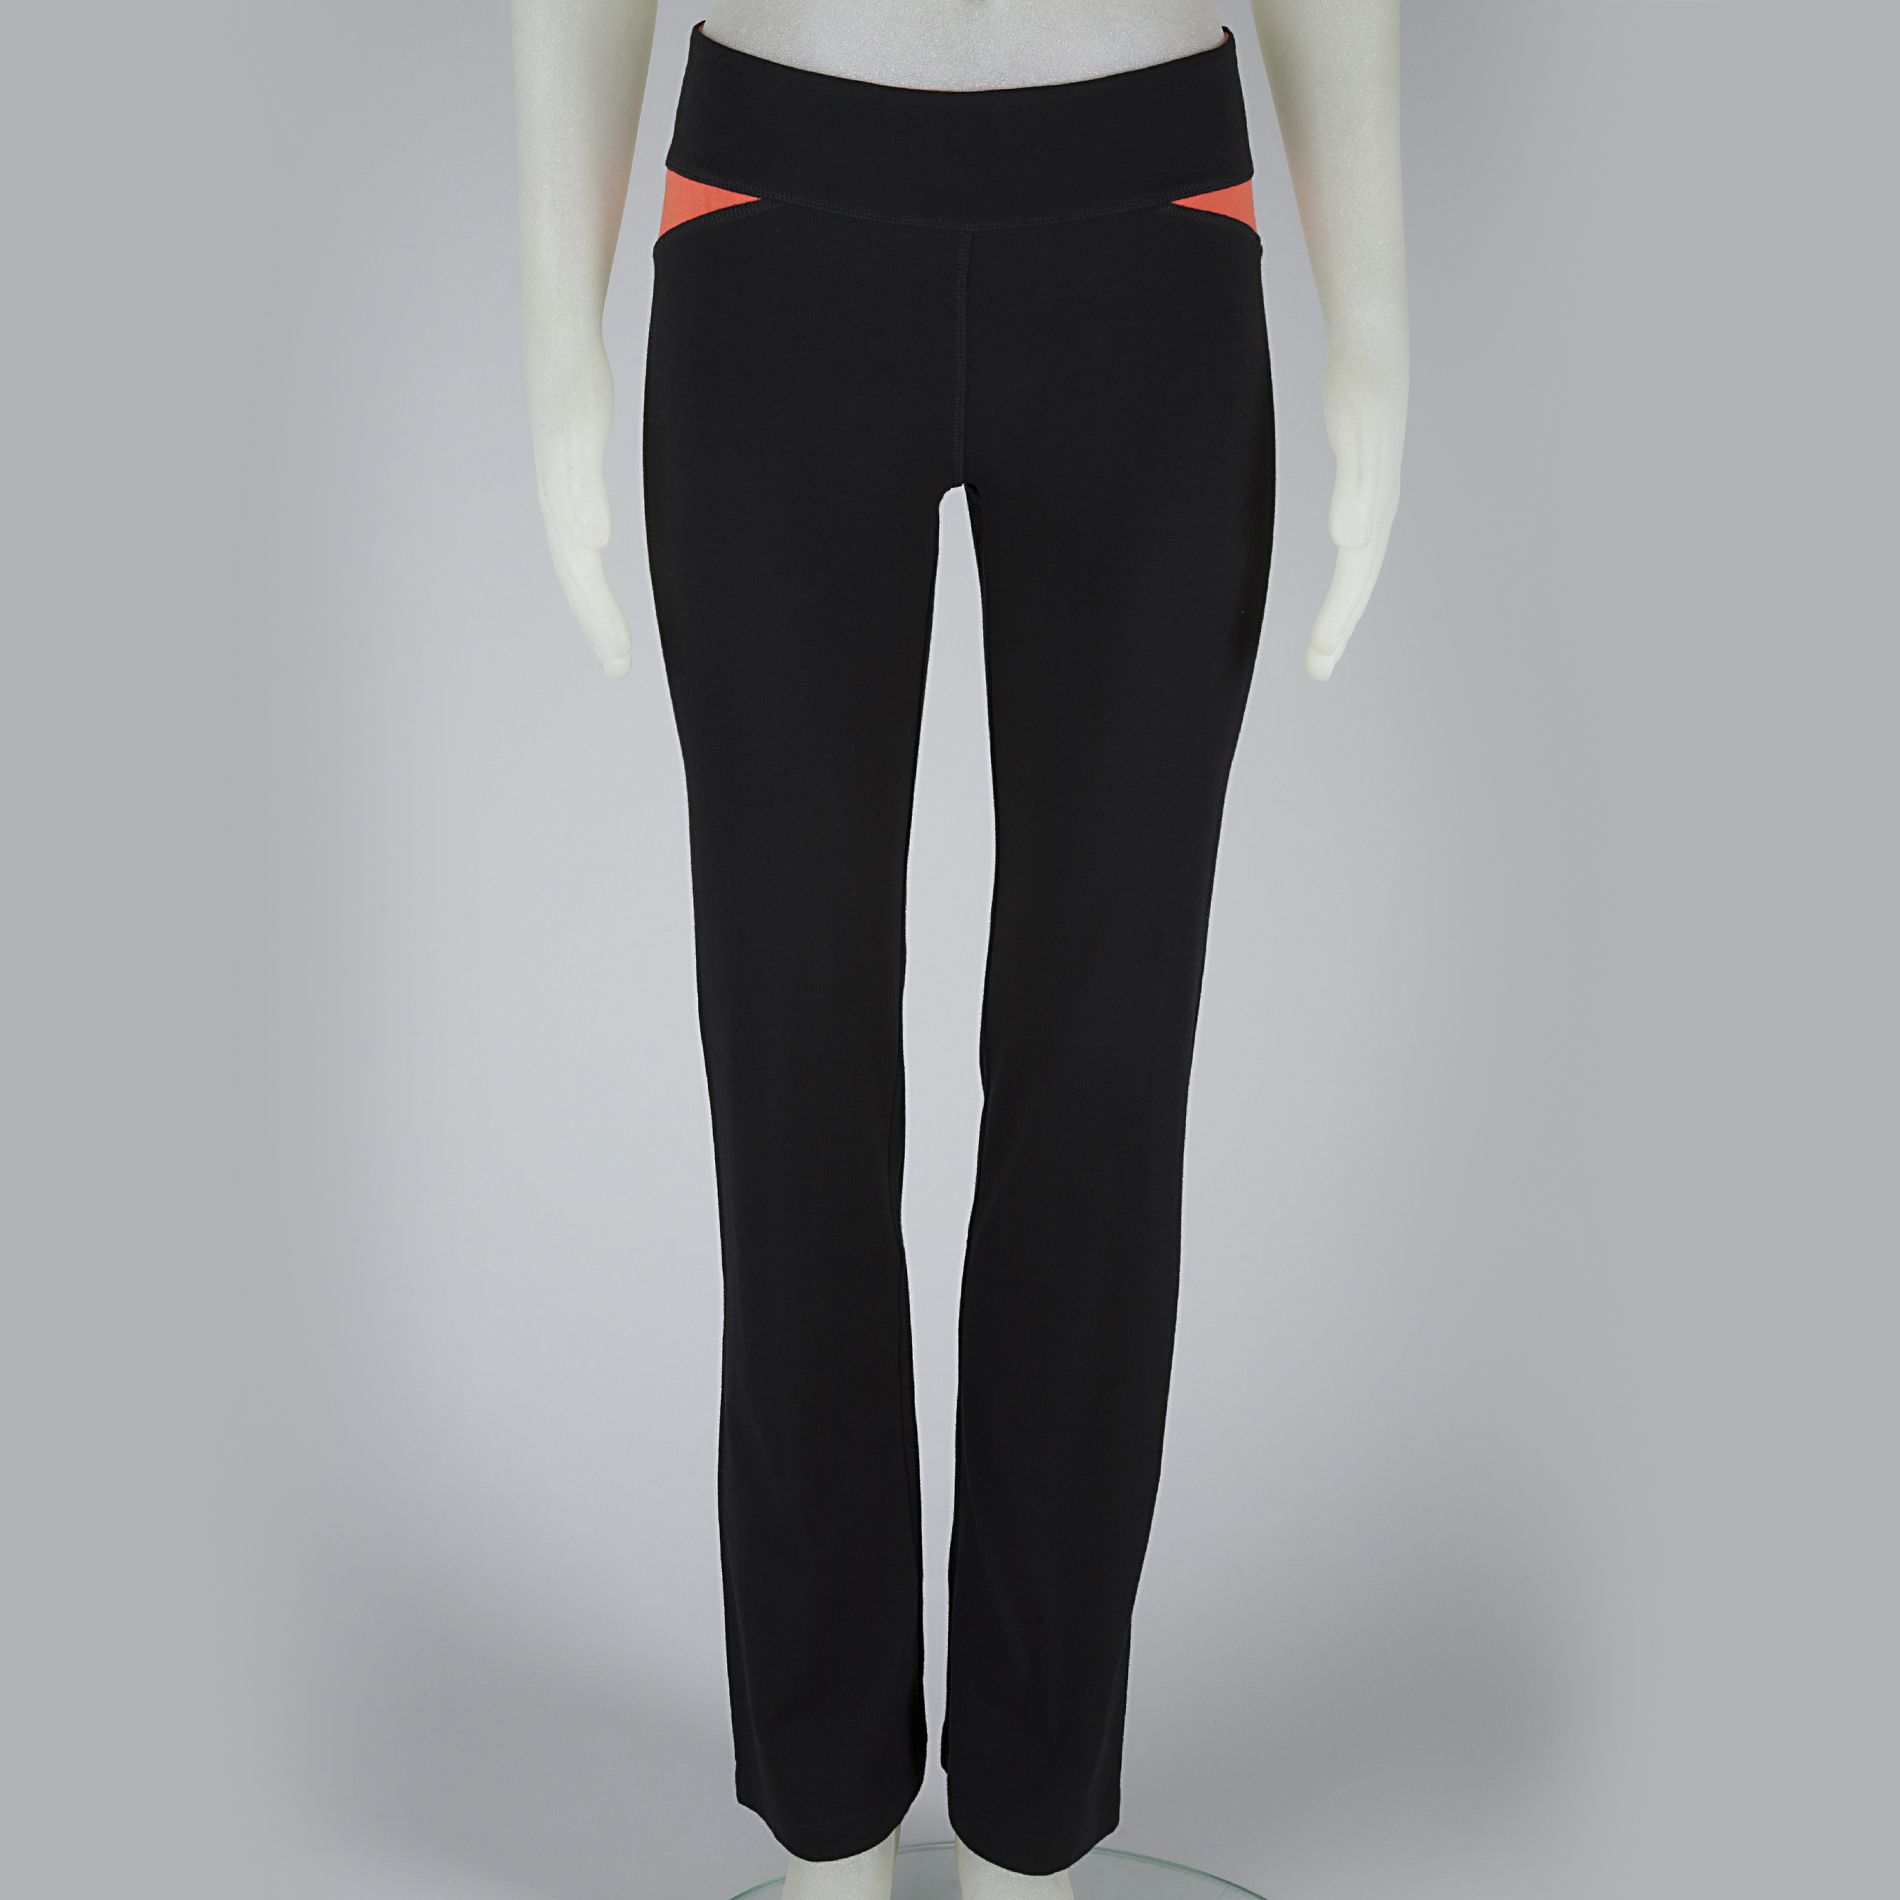 Everlast® Women's Slim Booty Active Pants at Sears.com